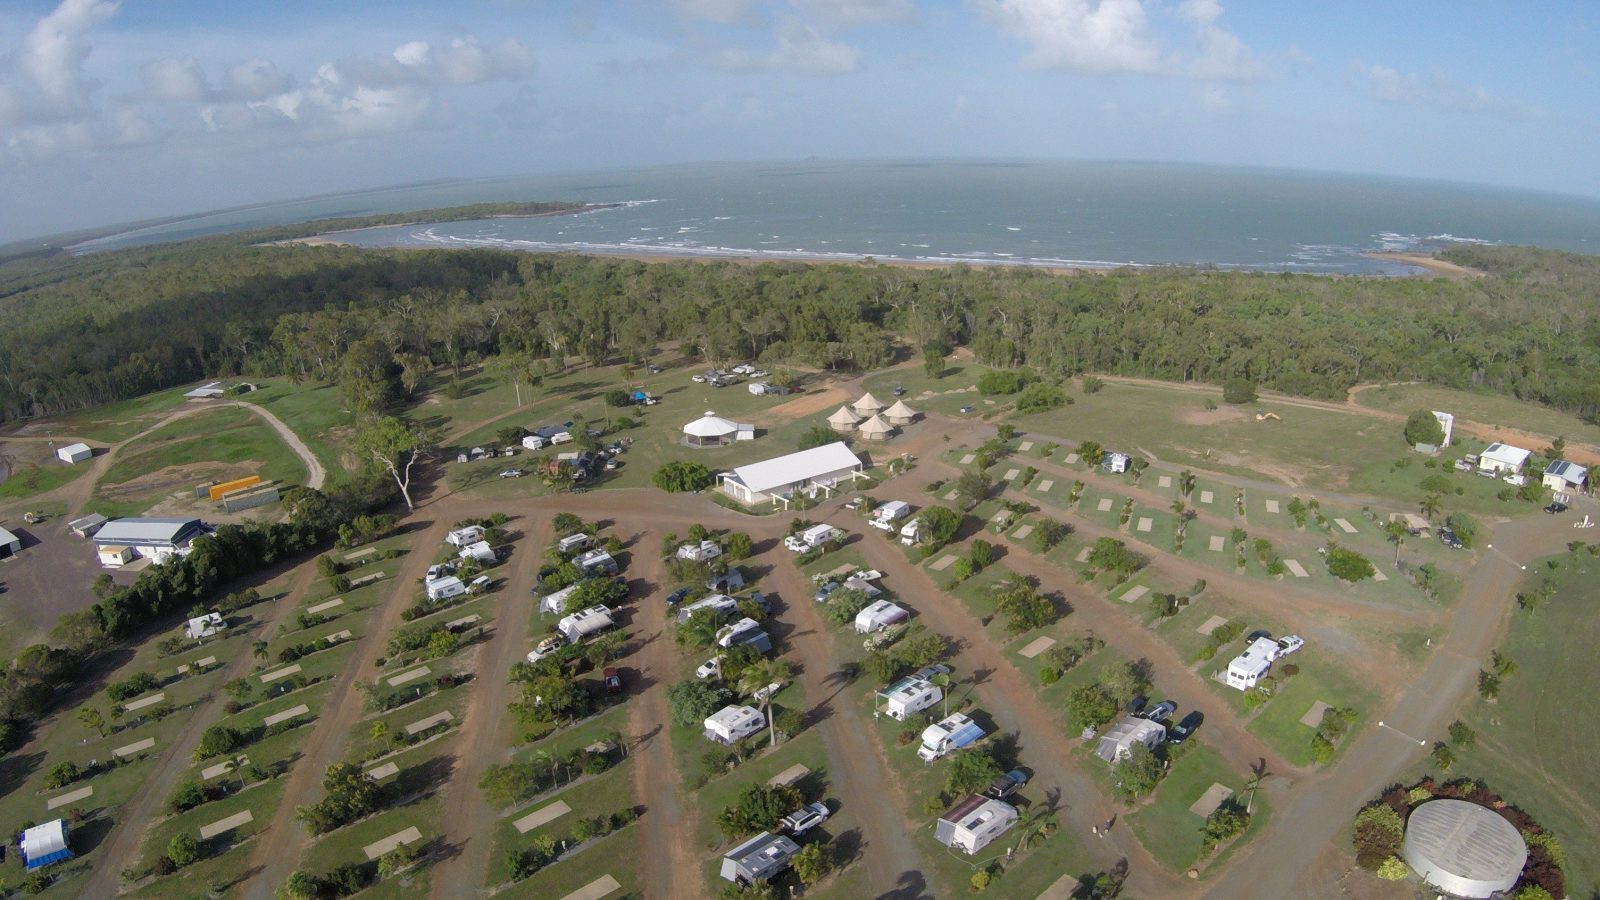 Aerial view of Park showing sites, amenities, glamping bungalow and the closeness of the beach